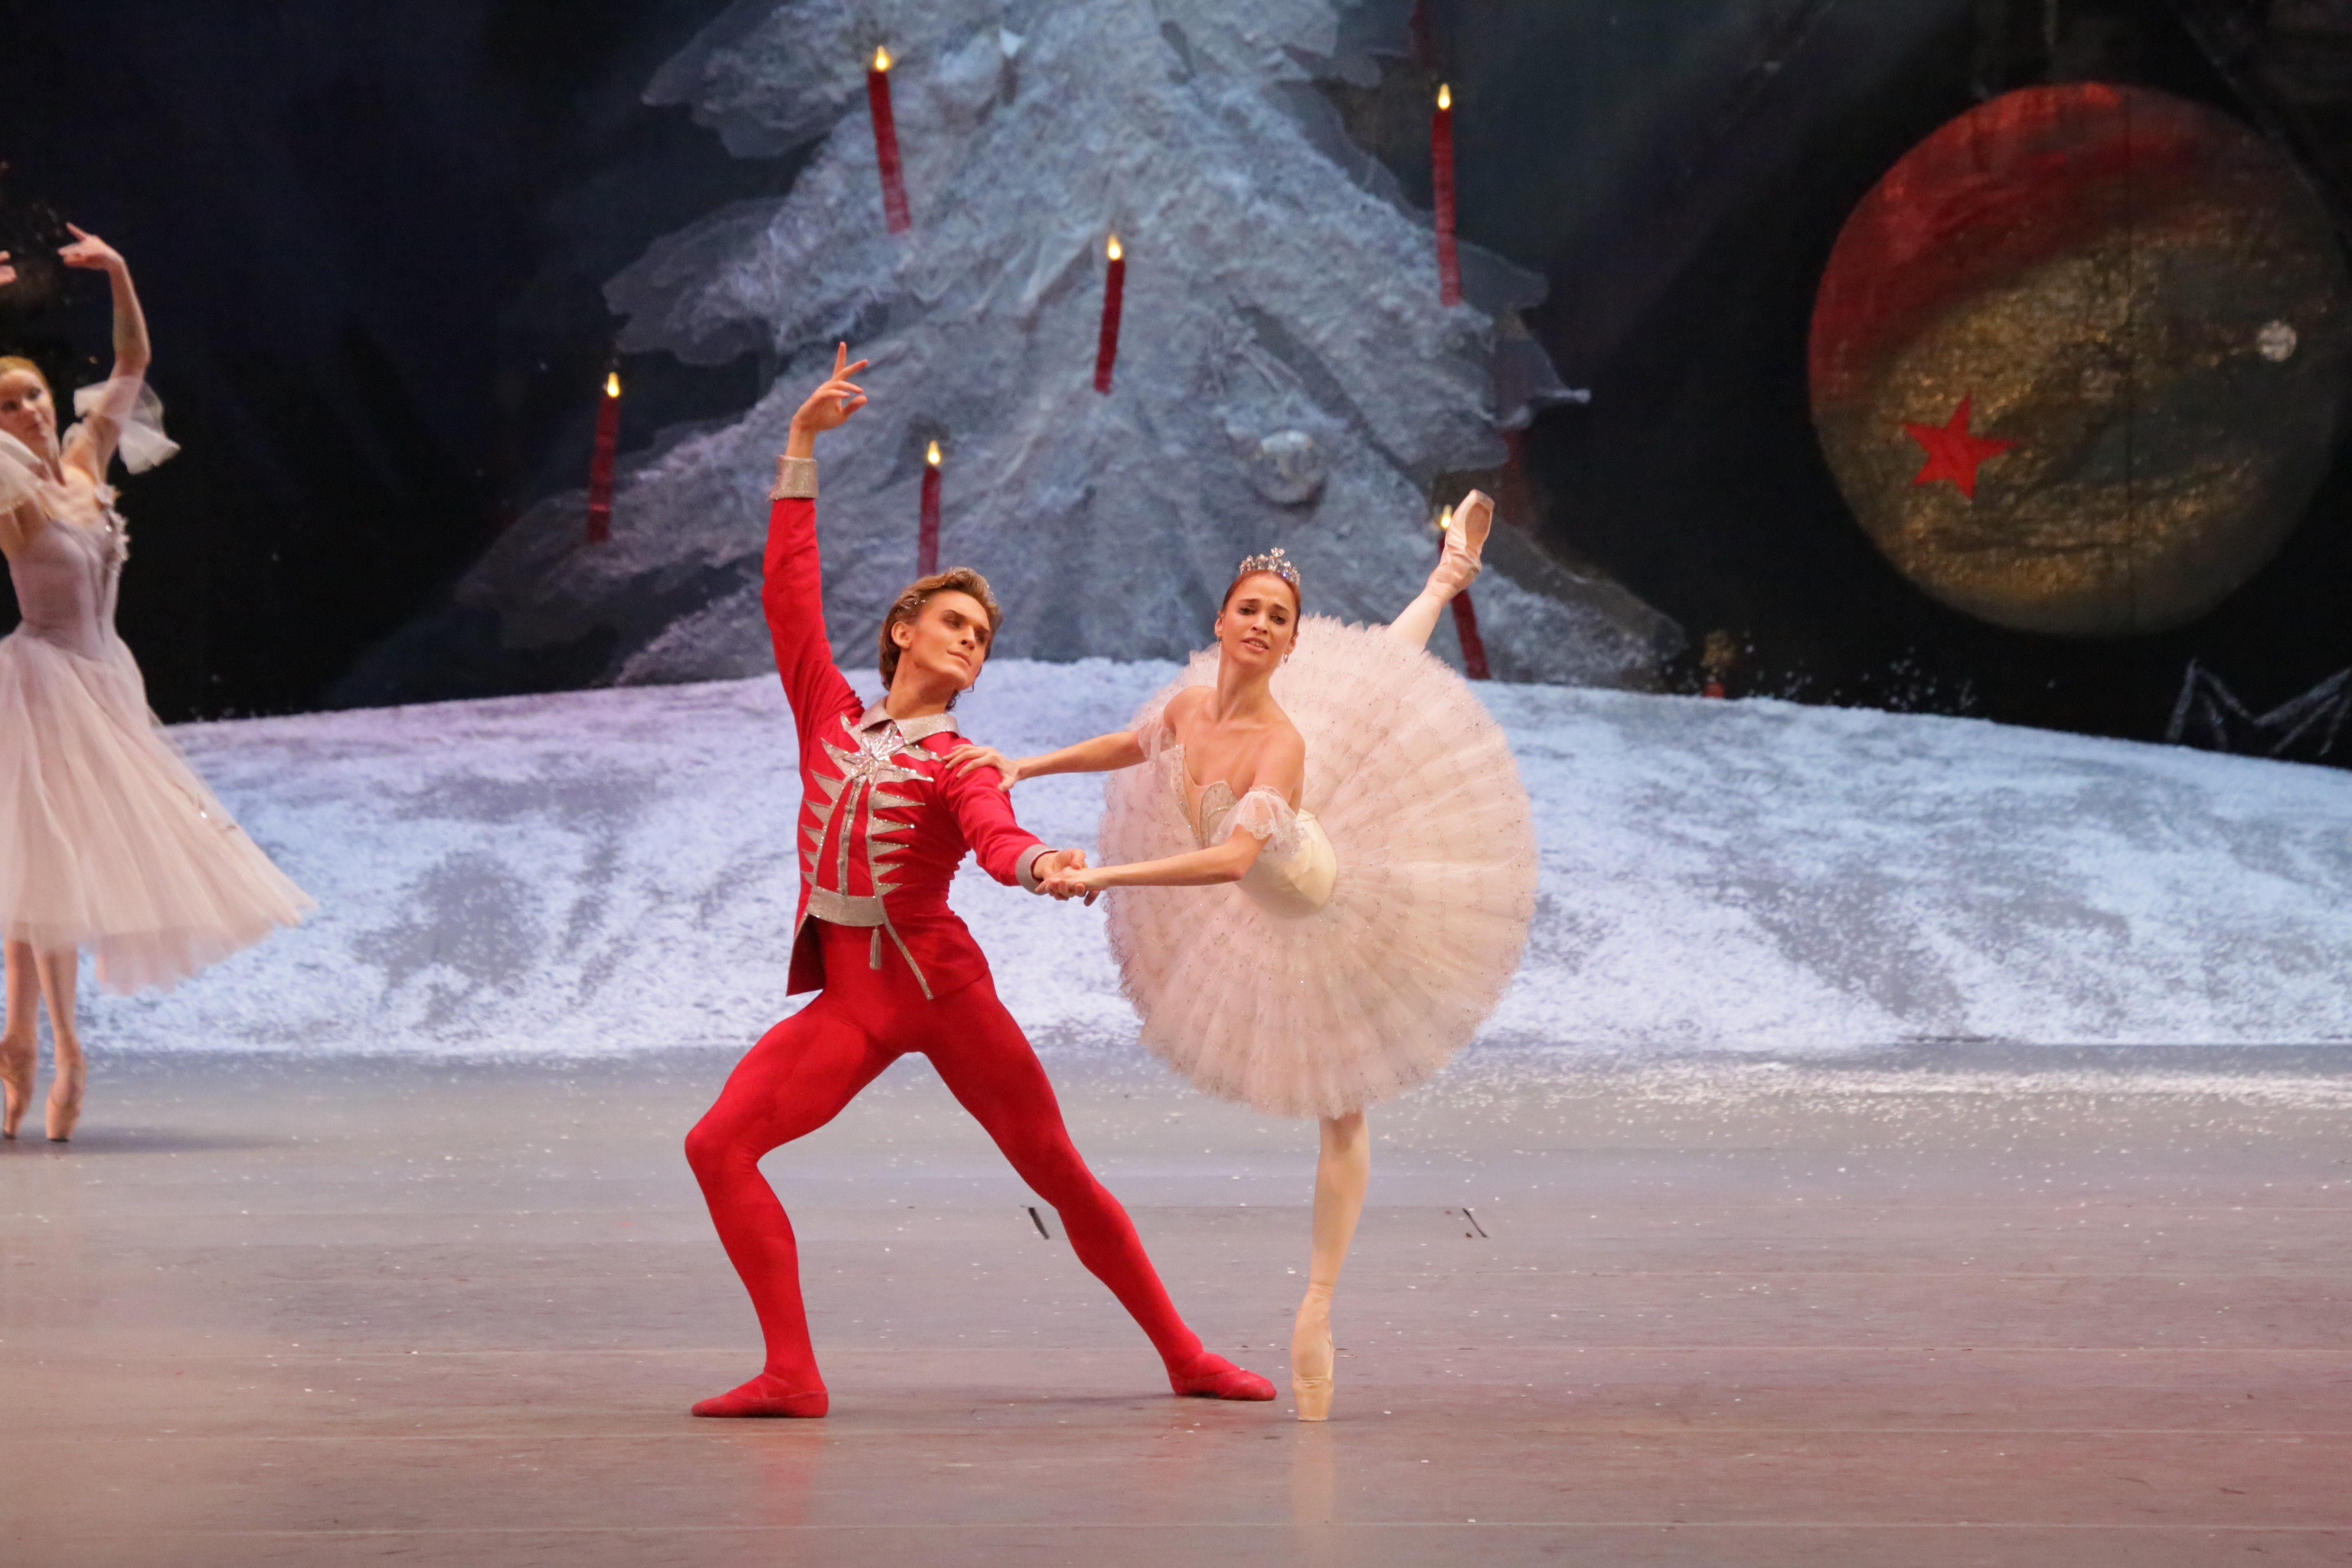 Nutcracker, Ana Nikulina and Denis Rodkin (credit: Damir Yusupov)